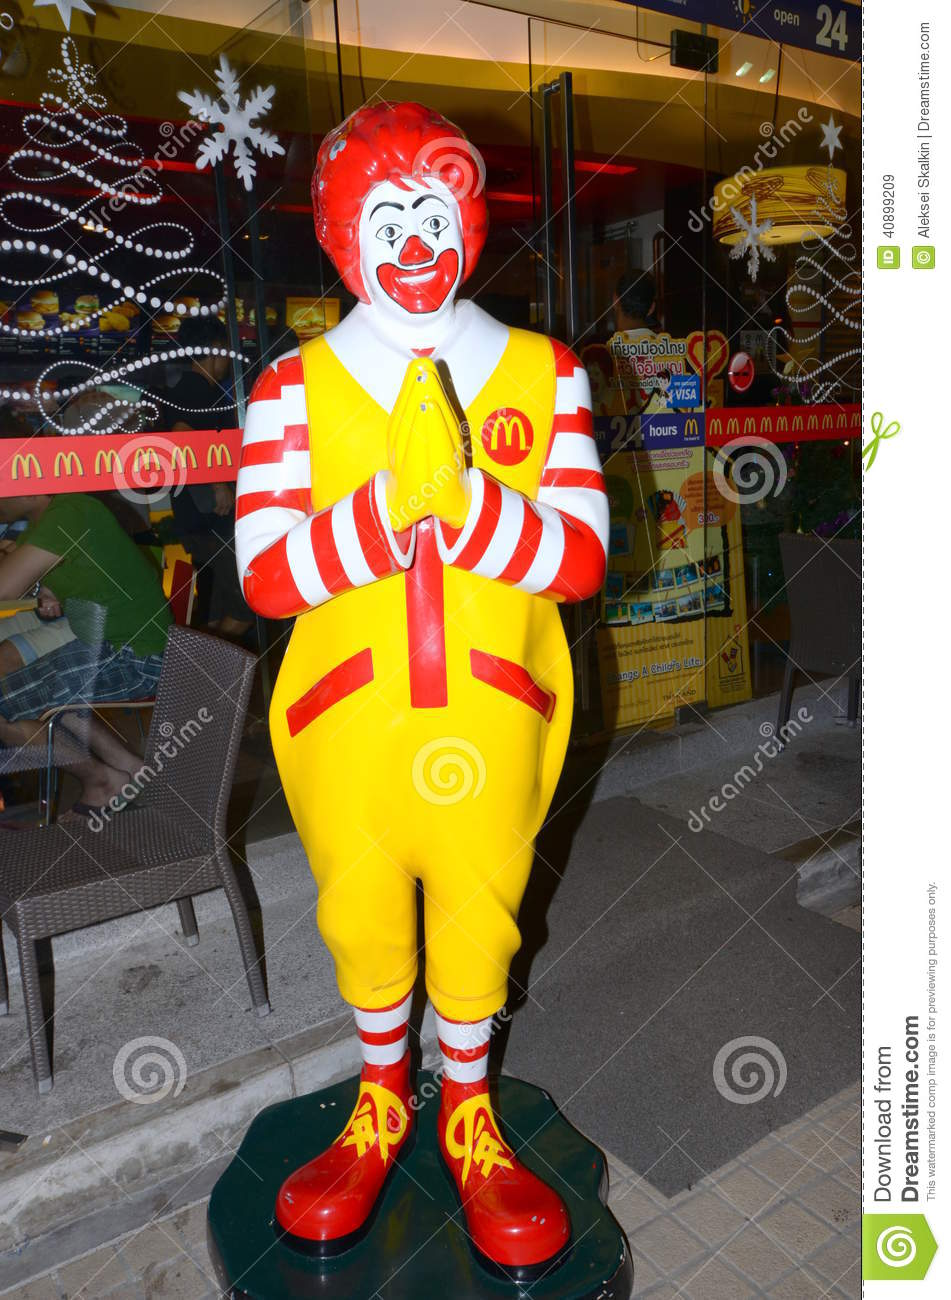 Ronald mcdonald hands clasped in a traditional thai greeting ronald mcdonald hands clasped in a traditional thai greeting kristyandbryce Images